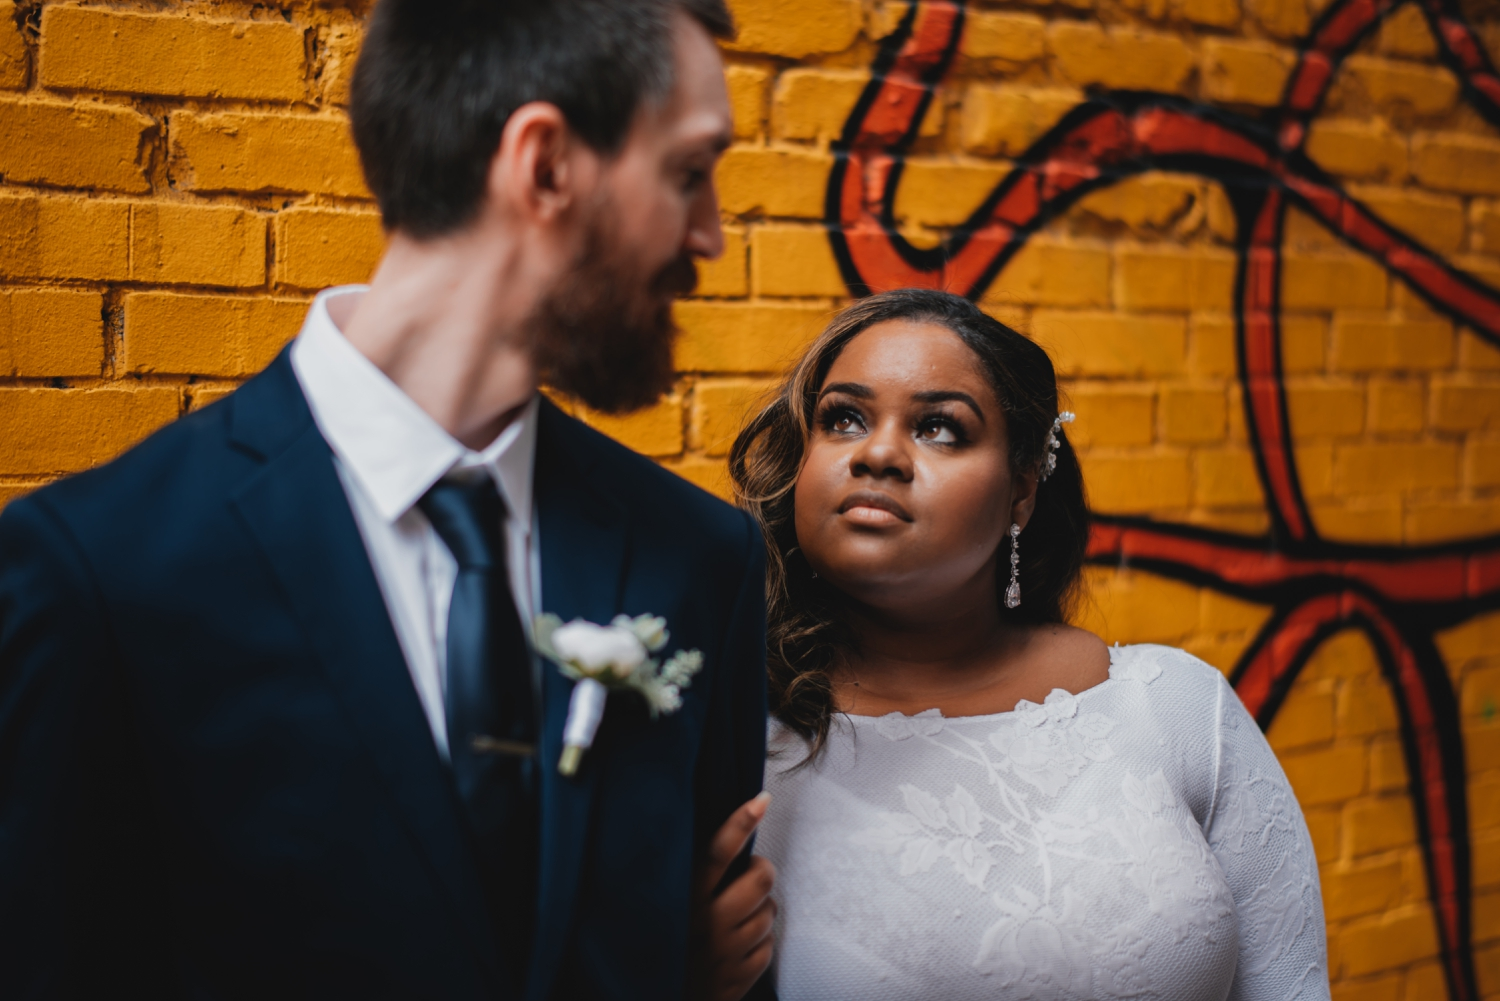 Chicago Elopement photographer - The Adamkovi, bride and groom in front of a graffiti walll